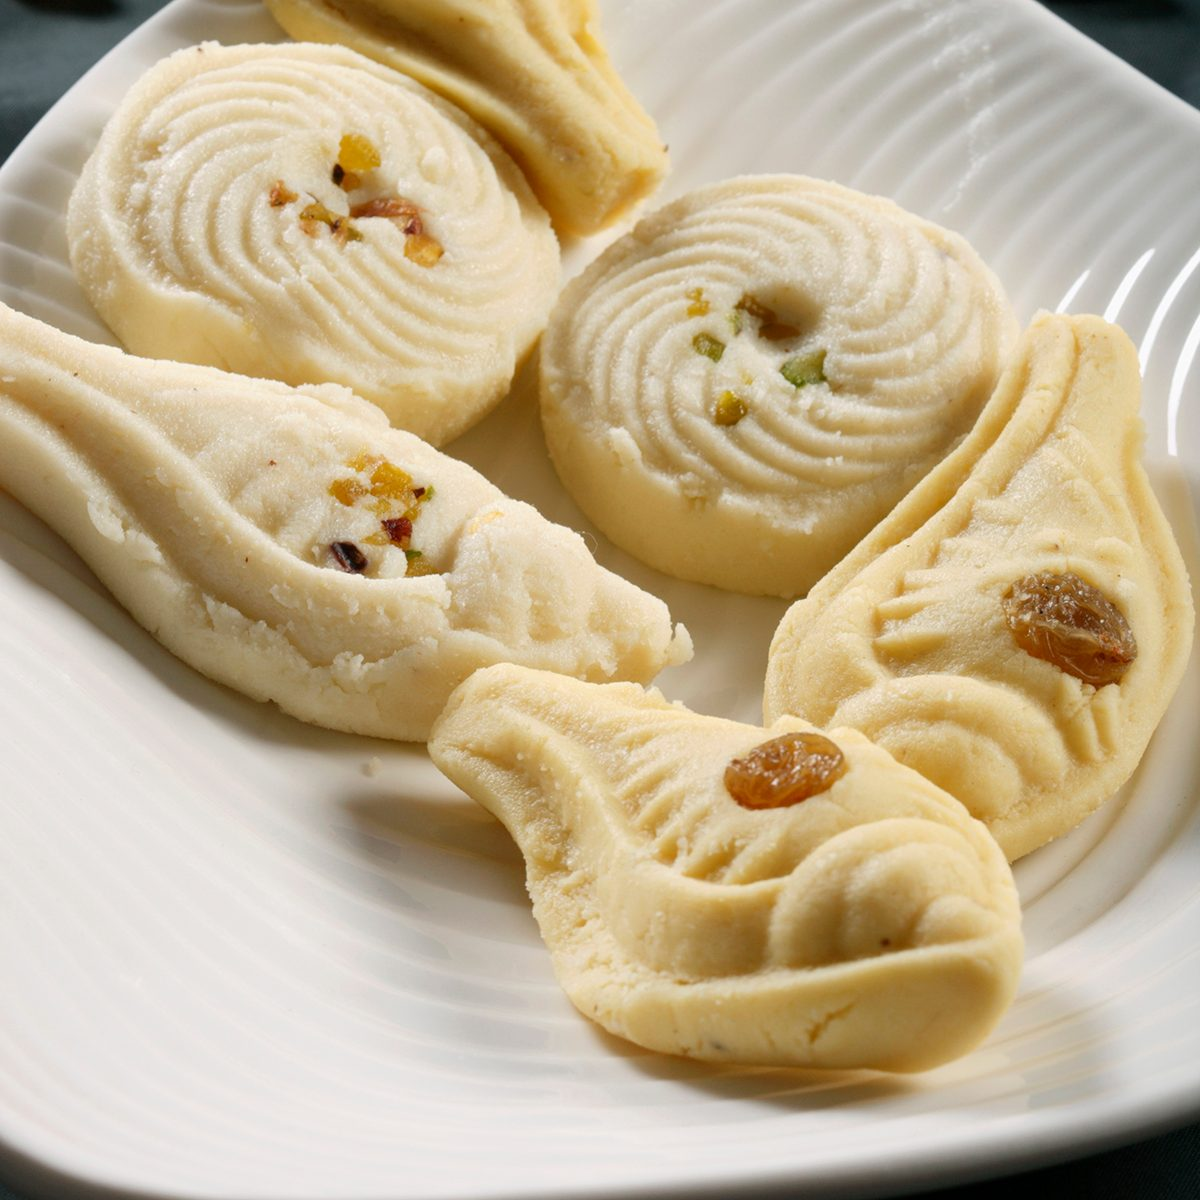 Sandesh is traditional bengali sweet dish prepared with cottage cheese.